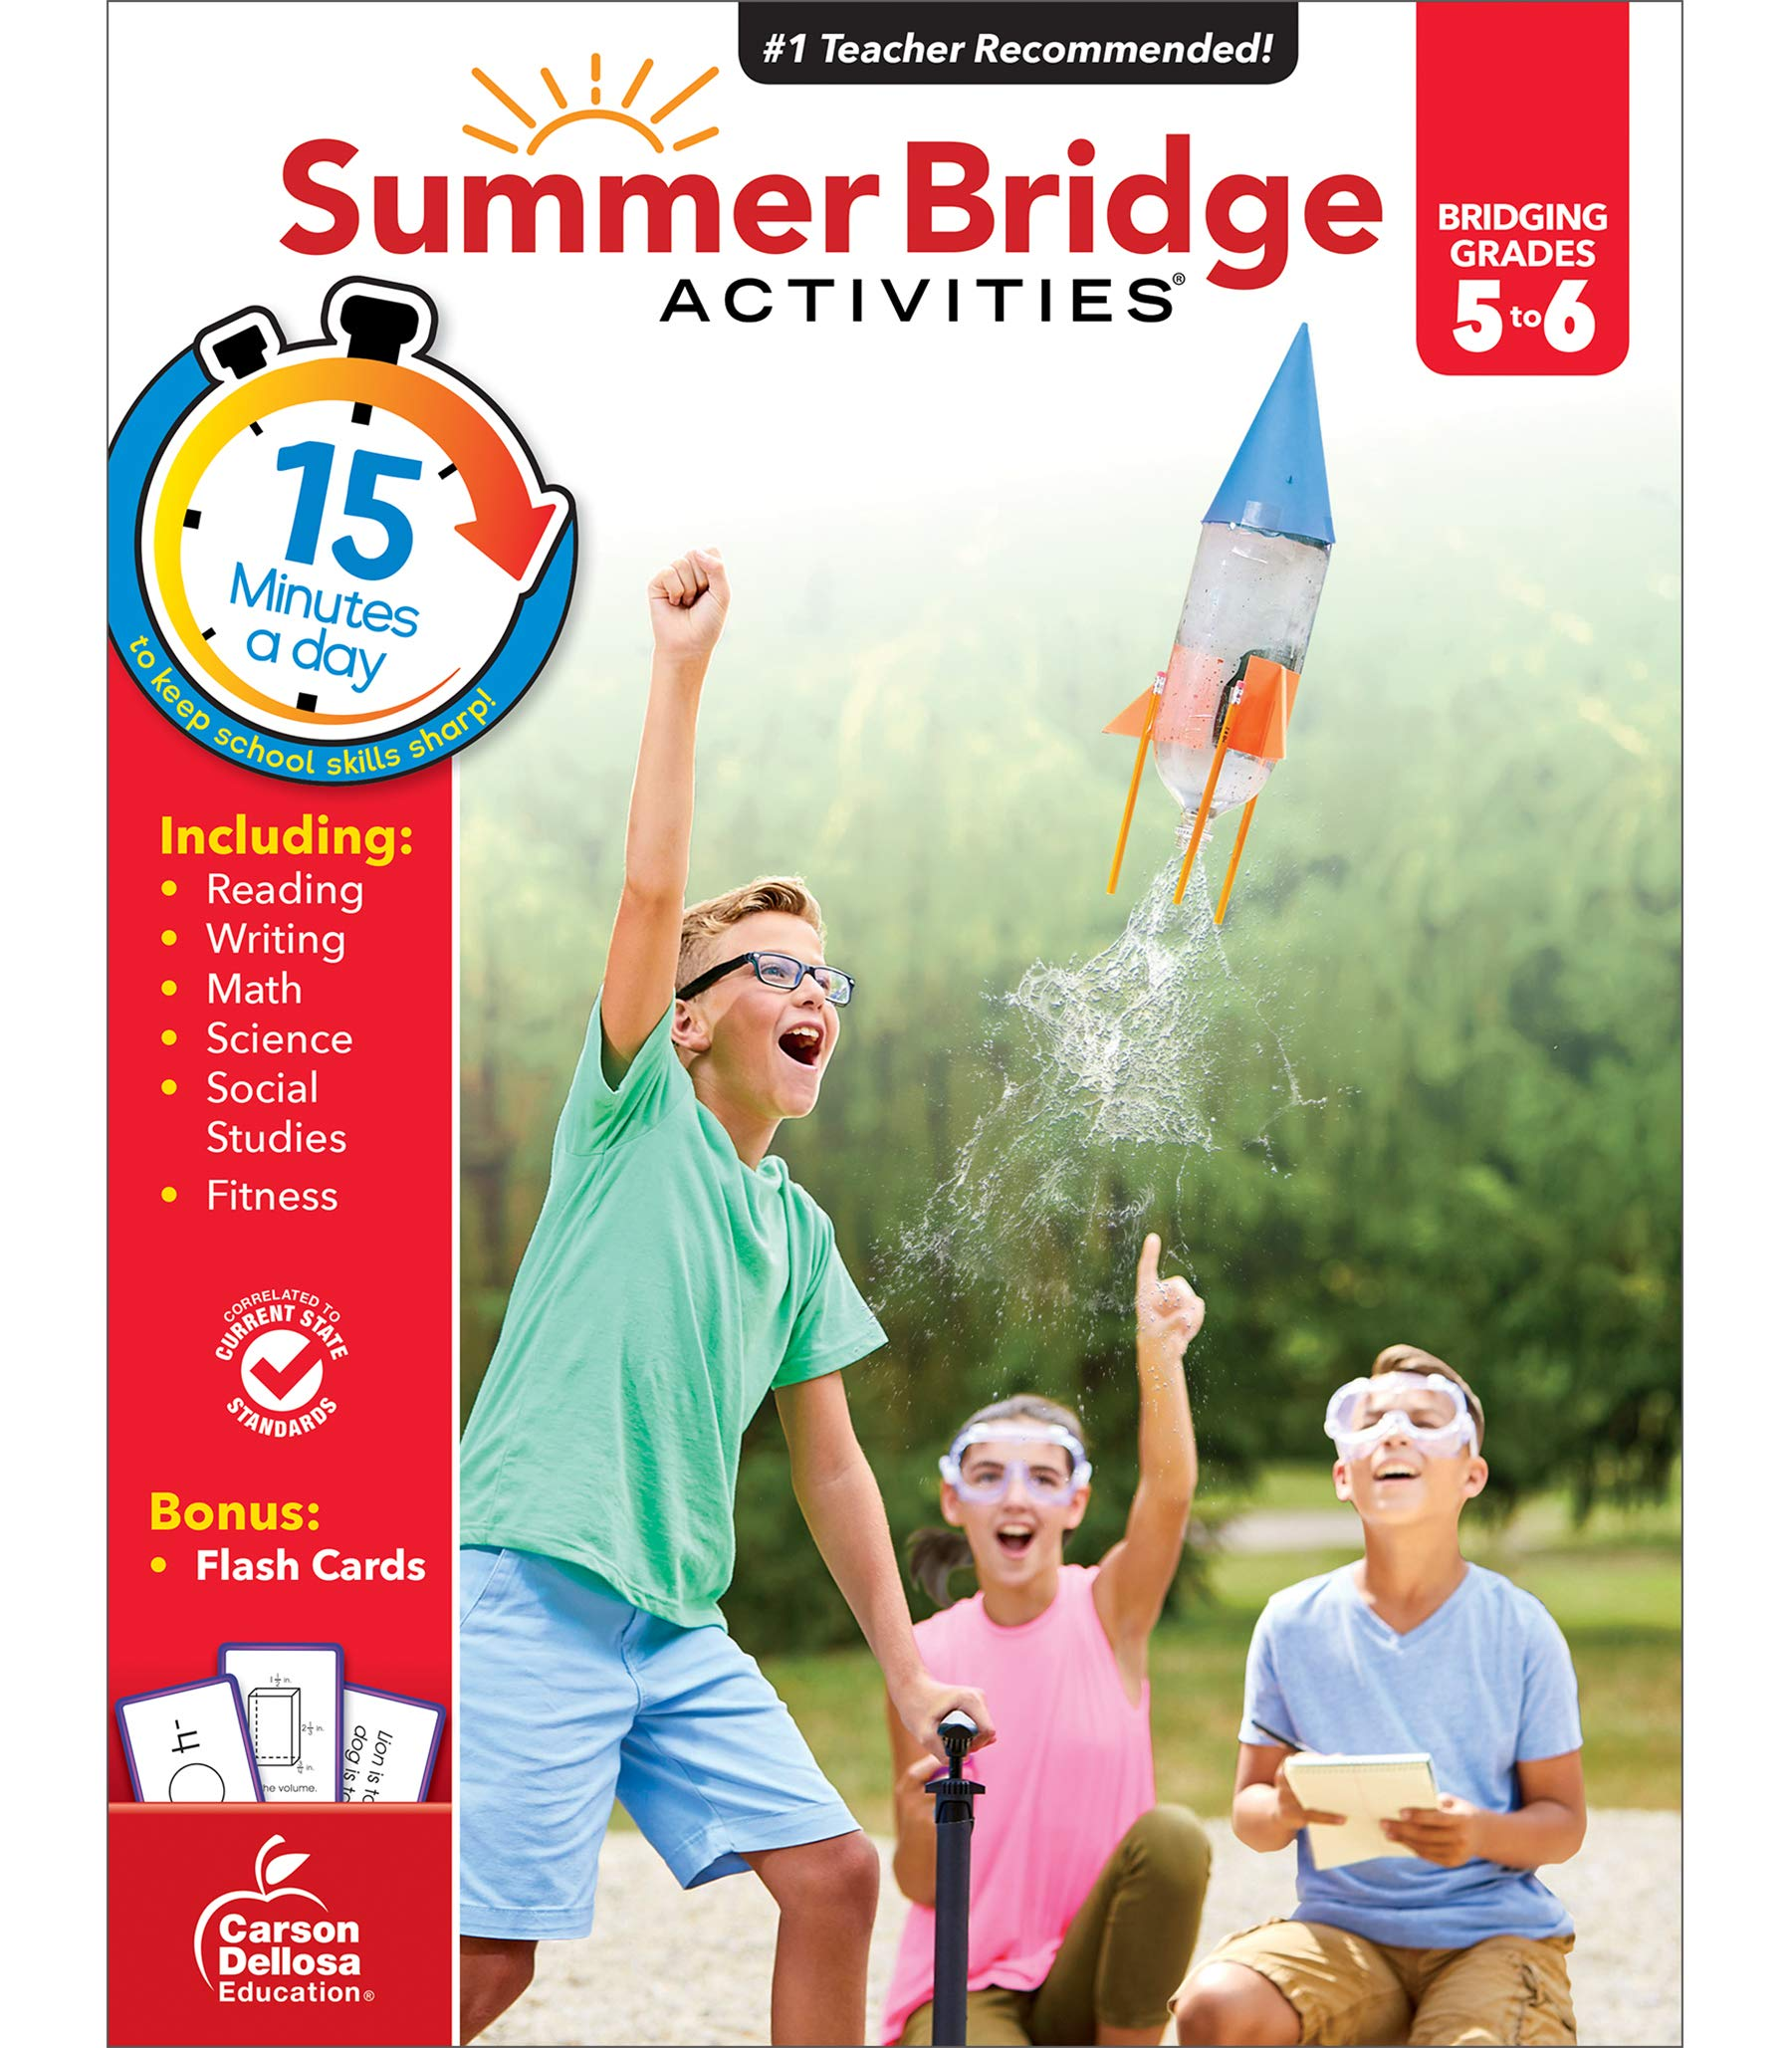 Summer Bridge Activities Workbook—Bridging Grades 5 to 6 in Just 15 Minutes a Day, Reading, Writing, Math, Science, Social Studies, Summer Learning Activity Book With Flash Cards (160 pgs)